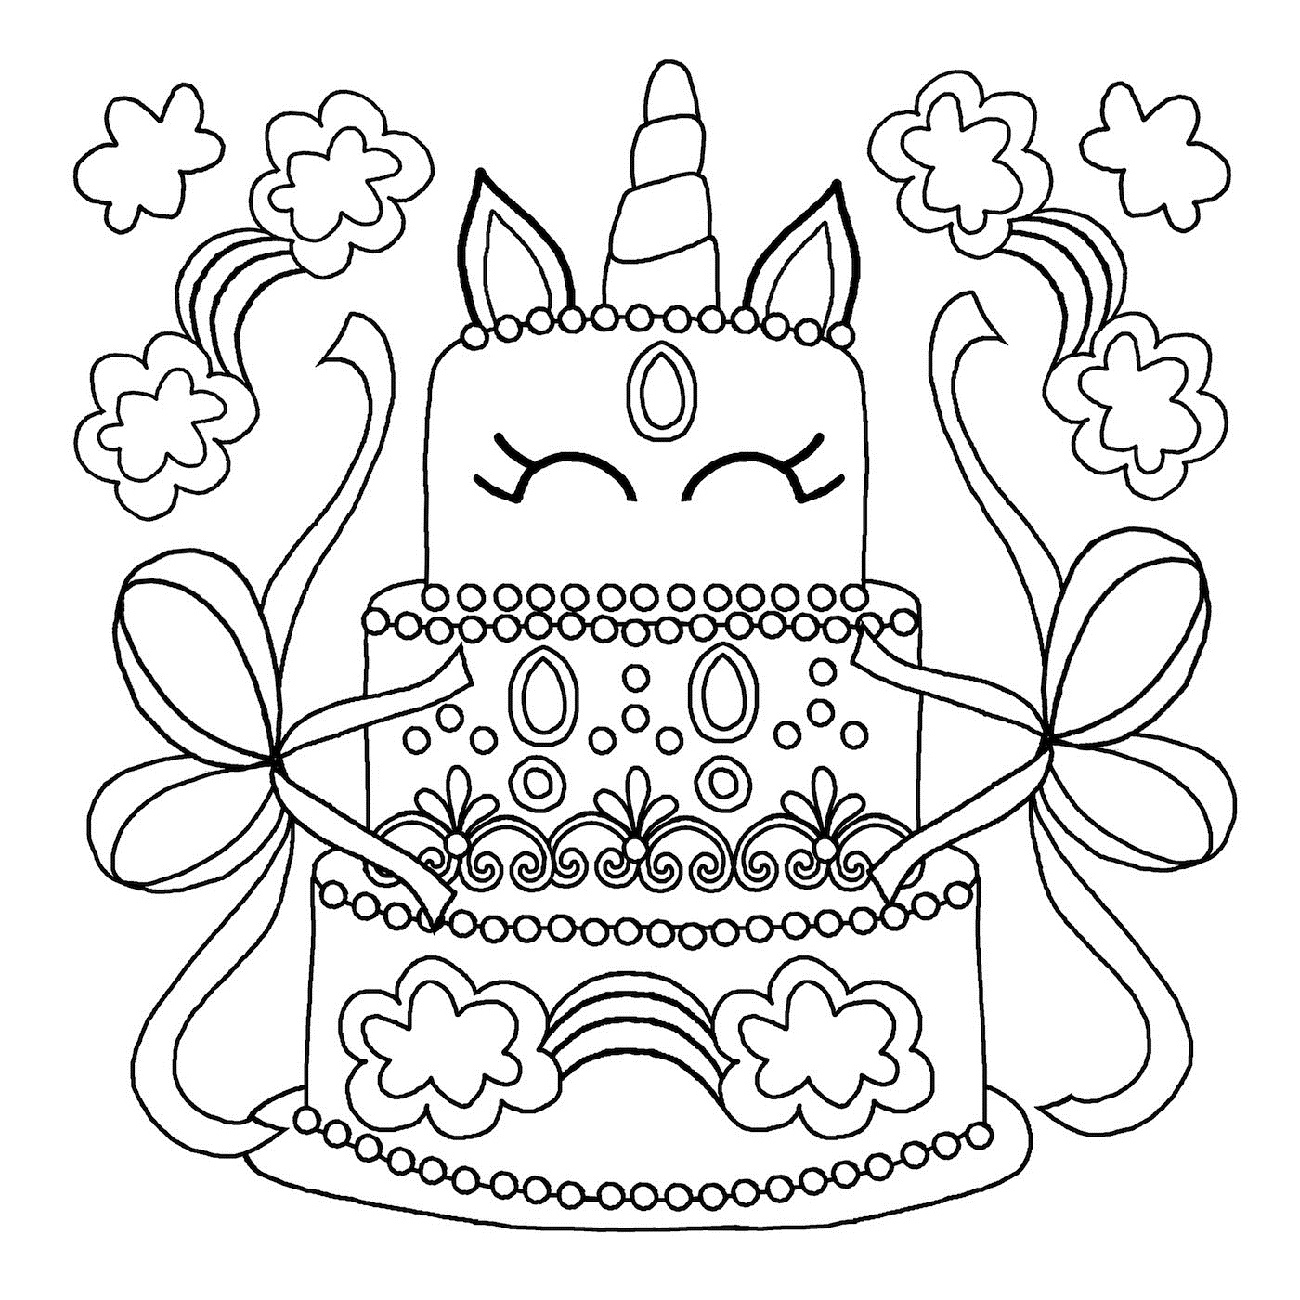 cake printables for coloring 20 cake coloring pages customize pdf printables sketch printables for coloring cake